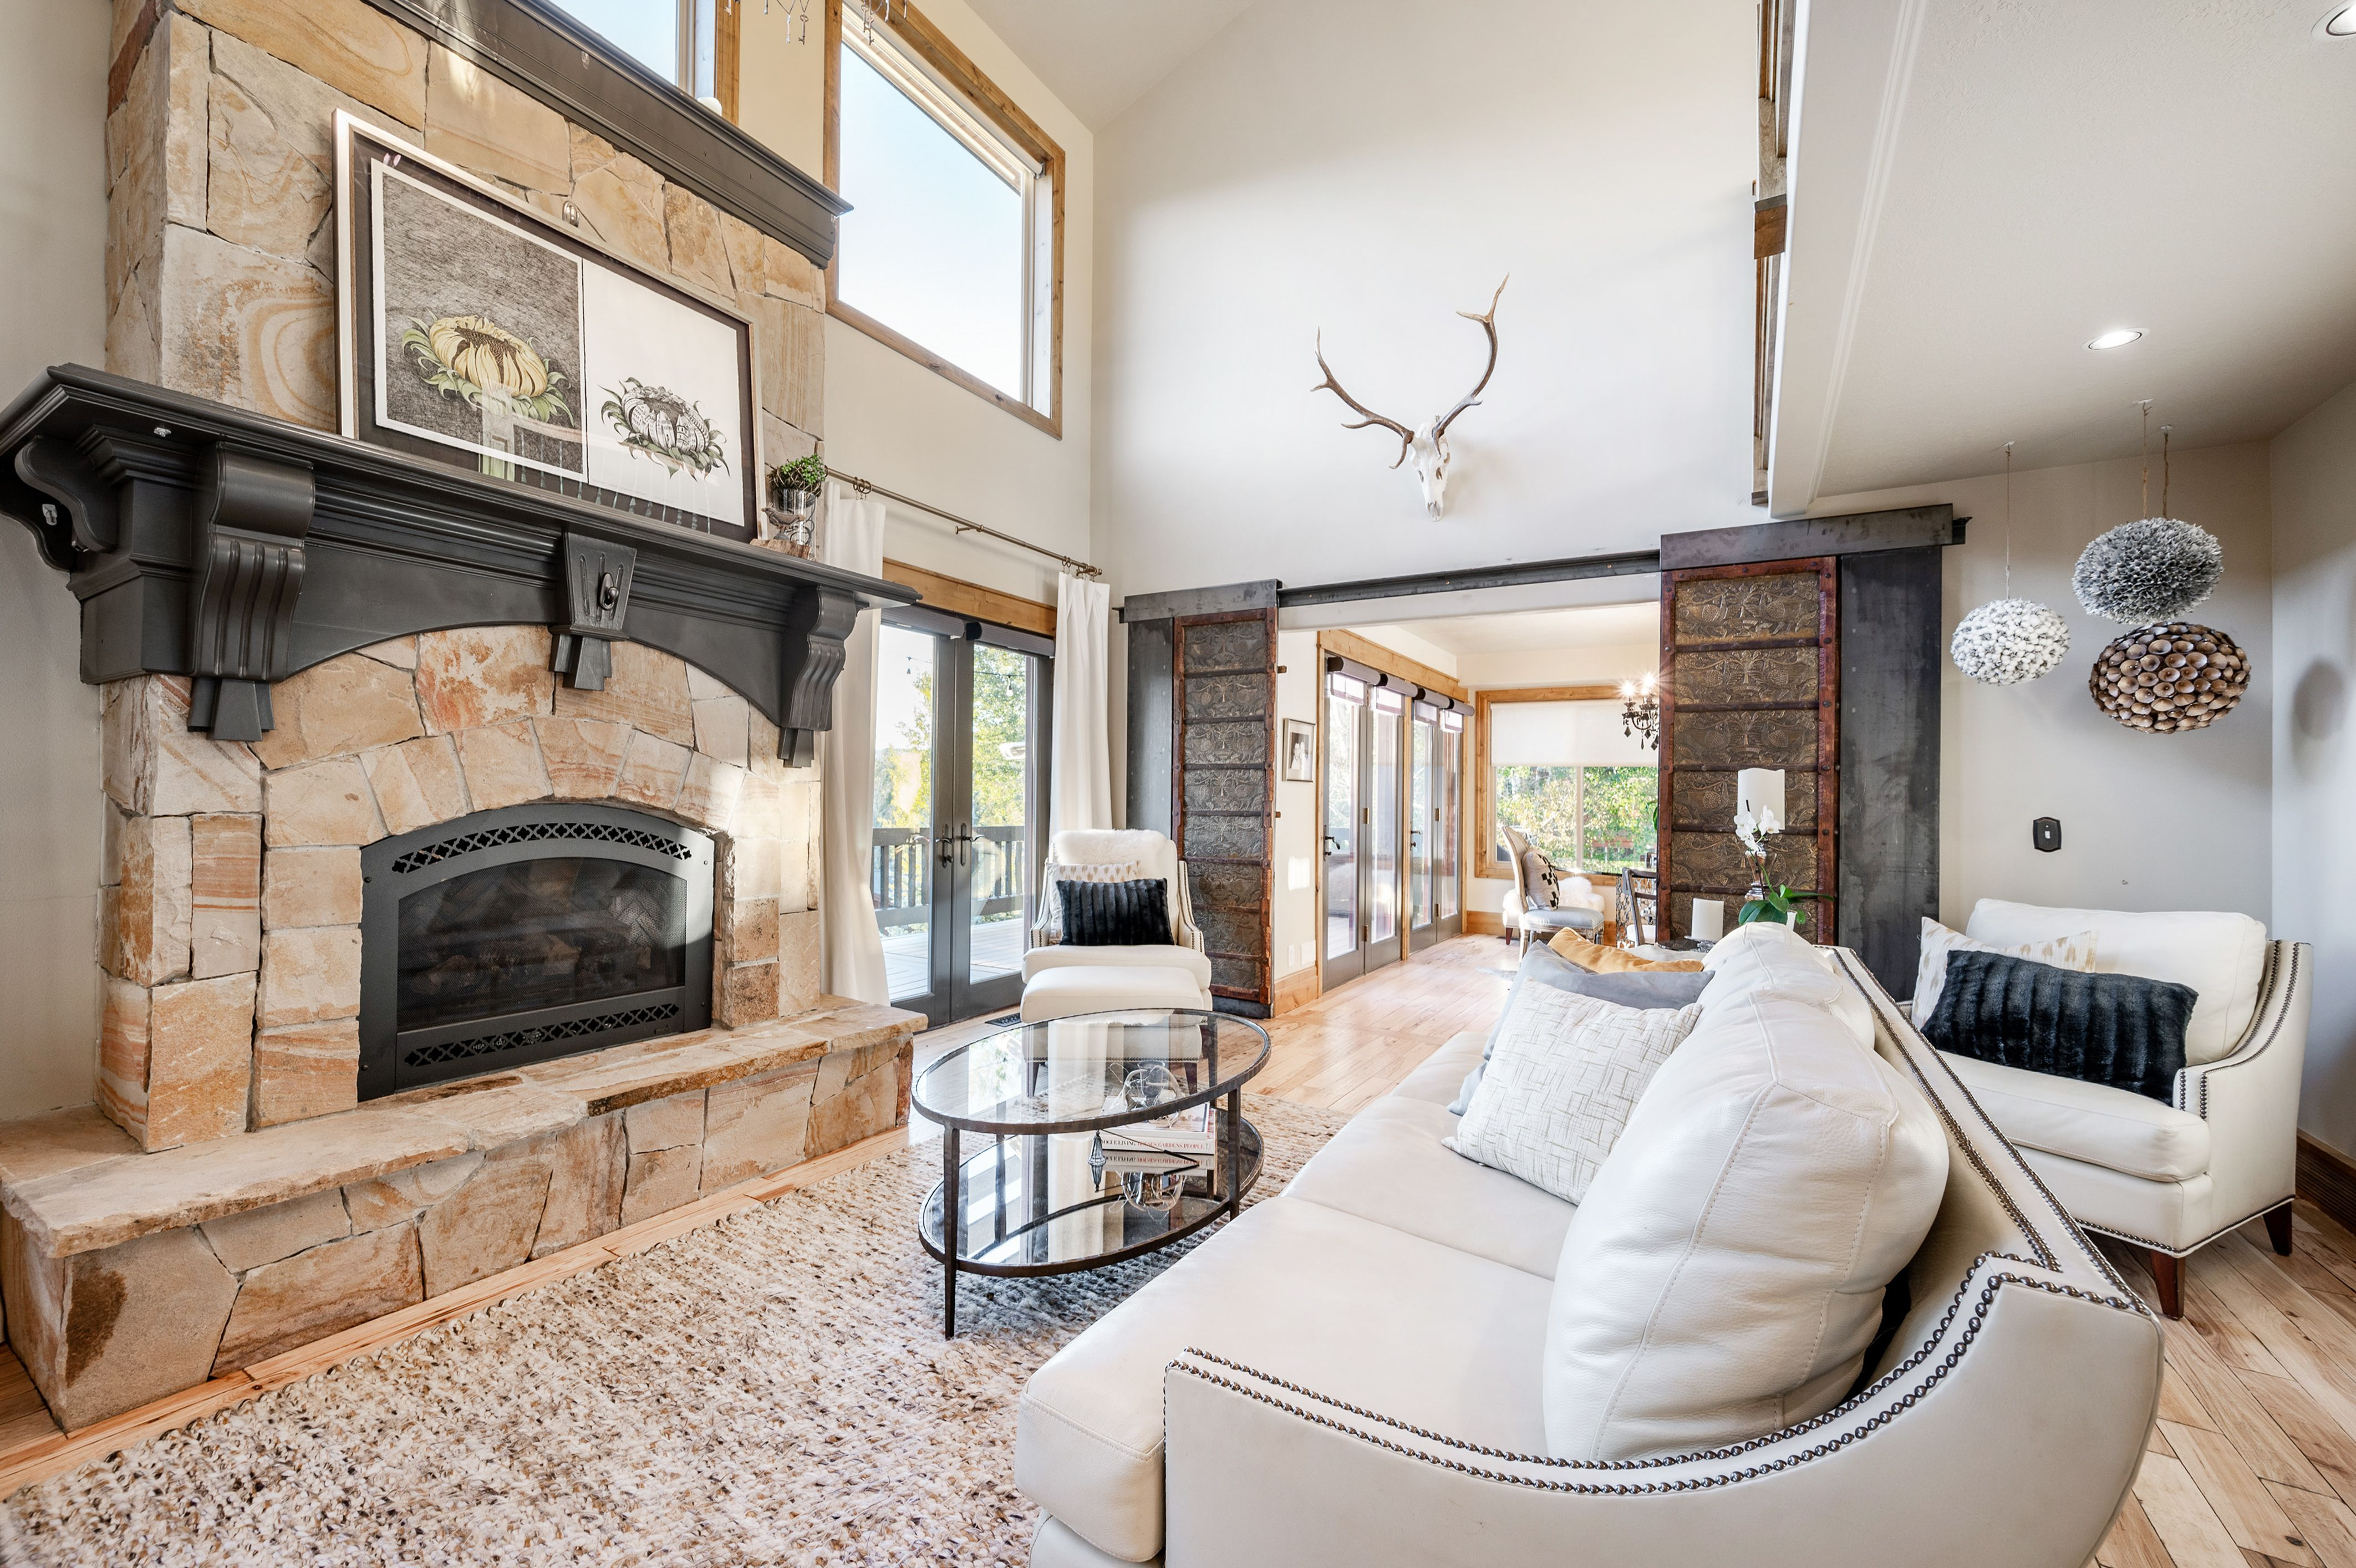 Fabulous great room in a home with the ideal open-concept flow. #GreatRoom #WindermereUtah #LivingRoom #Fireplace #ParkCityHomes #UtahHomes #DreamHome #LuxuryLiving #Luxury #Comfy #Cozy #Neutrals #BarnDoors #Couches #Neutrals #HomeDesign #HomeDecor #Interior #Home #Design #Style #HomeStyle